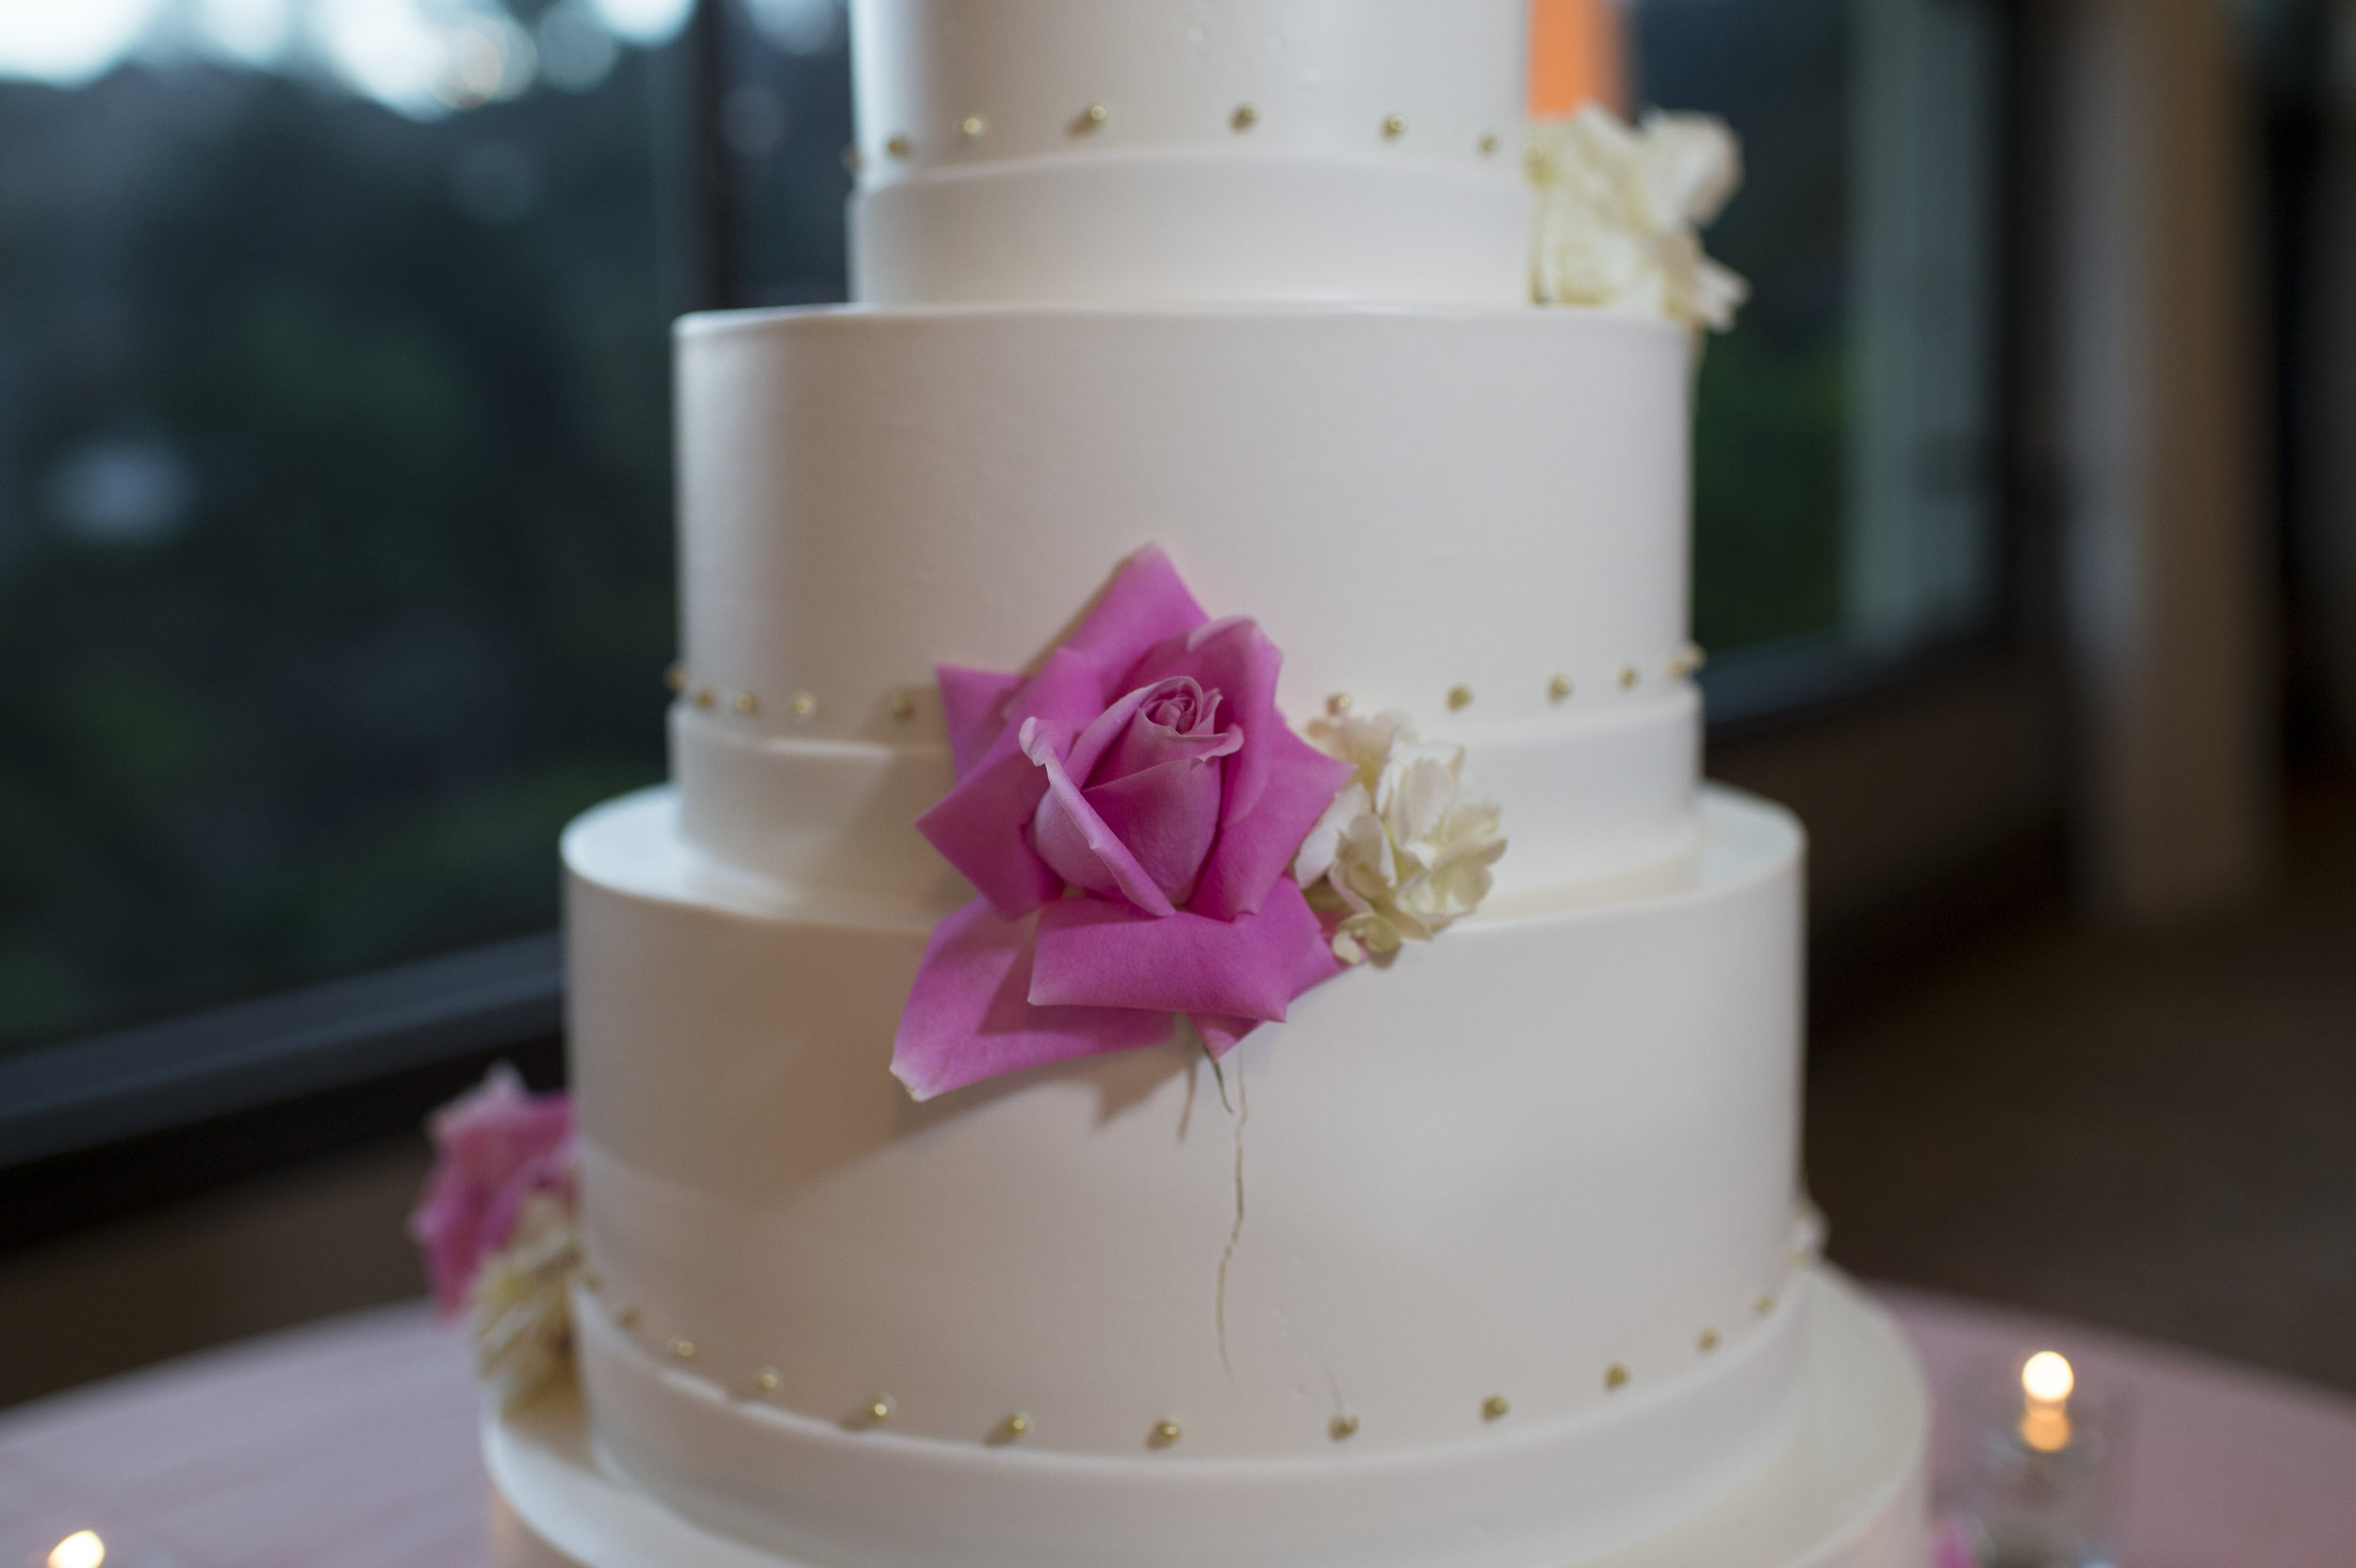 White Wedding Cake - A Romantic Bel Air Bay Club Ocean-View Wedding - Southern California Wedding - Kevin Dinh Photography